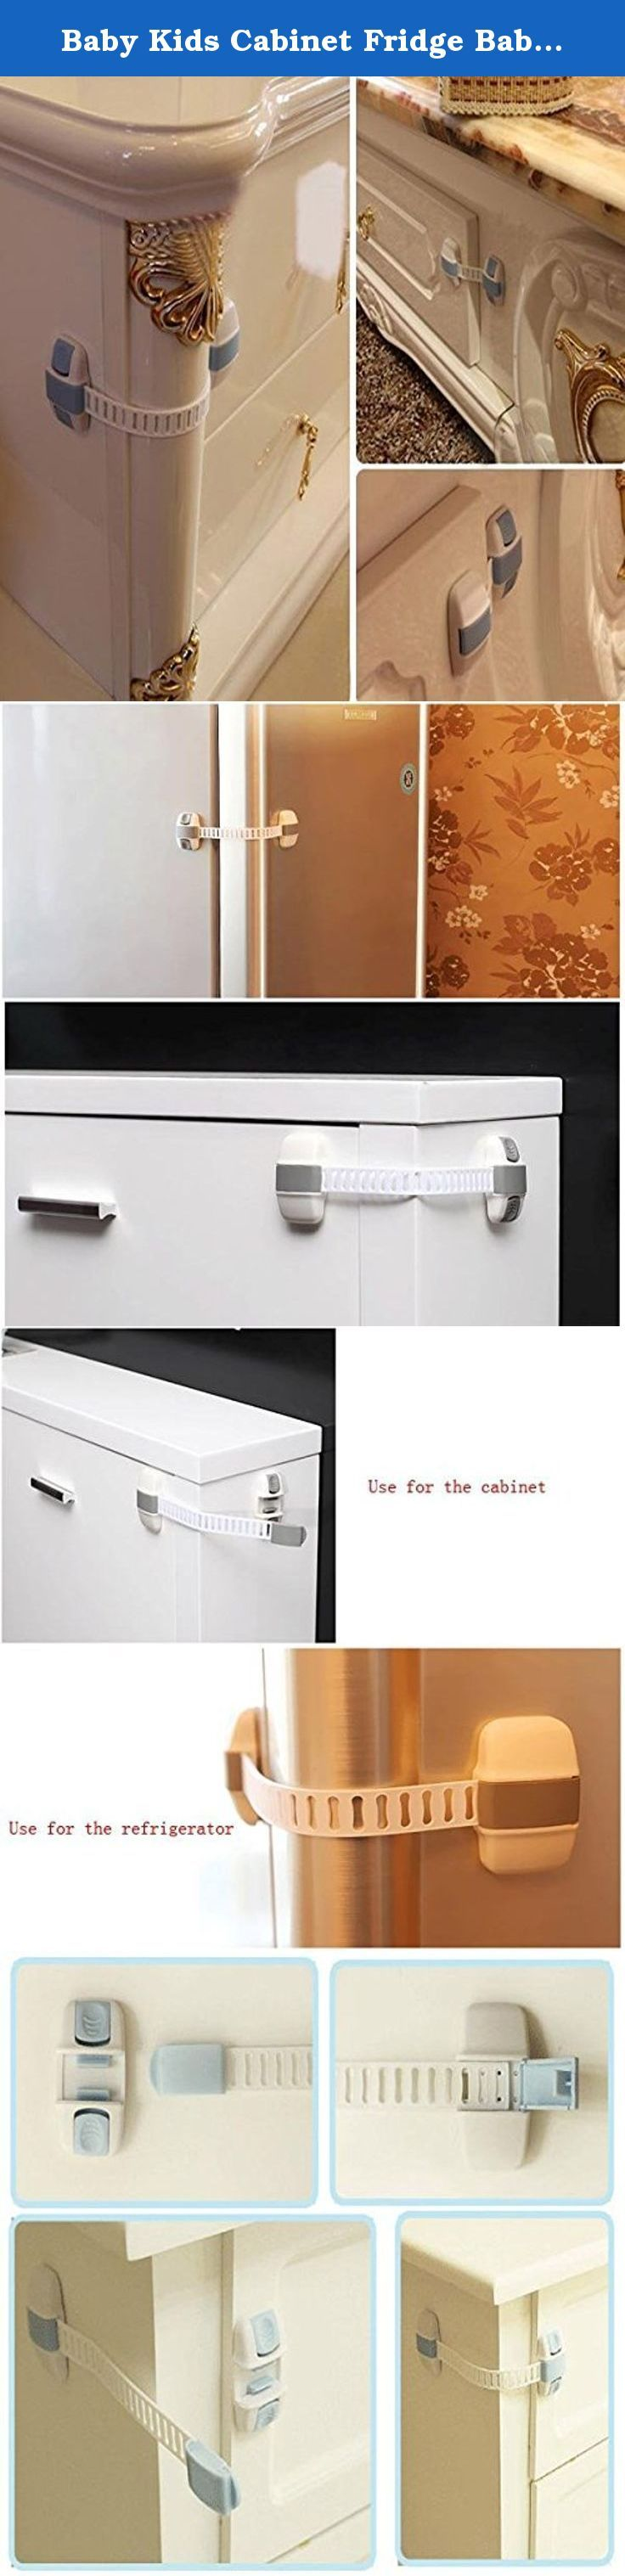 Baby Kids Cabinet Fridge Baby Security Sliding Door Drawer Straps Freezer Safety Wardrobe Cupboard Catch Lock. Description : Baby Kids Cabinet Fridge Baby Security Sliding Door Drawer Straps Freezer Safety Wardrobe Cupboard Catch Lock Used in the refrigerator, drawer, door switch, protecting children. But also protection of the refrigerator is not a waste of electricity. Door Lock to prevent children playing door for naughty and injuring fingers. Also open the medicine cabinet to prevent…